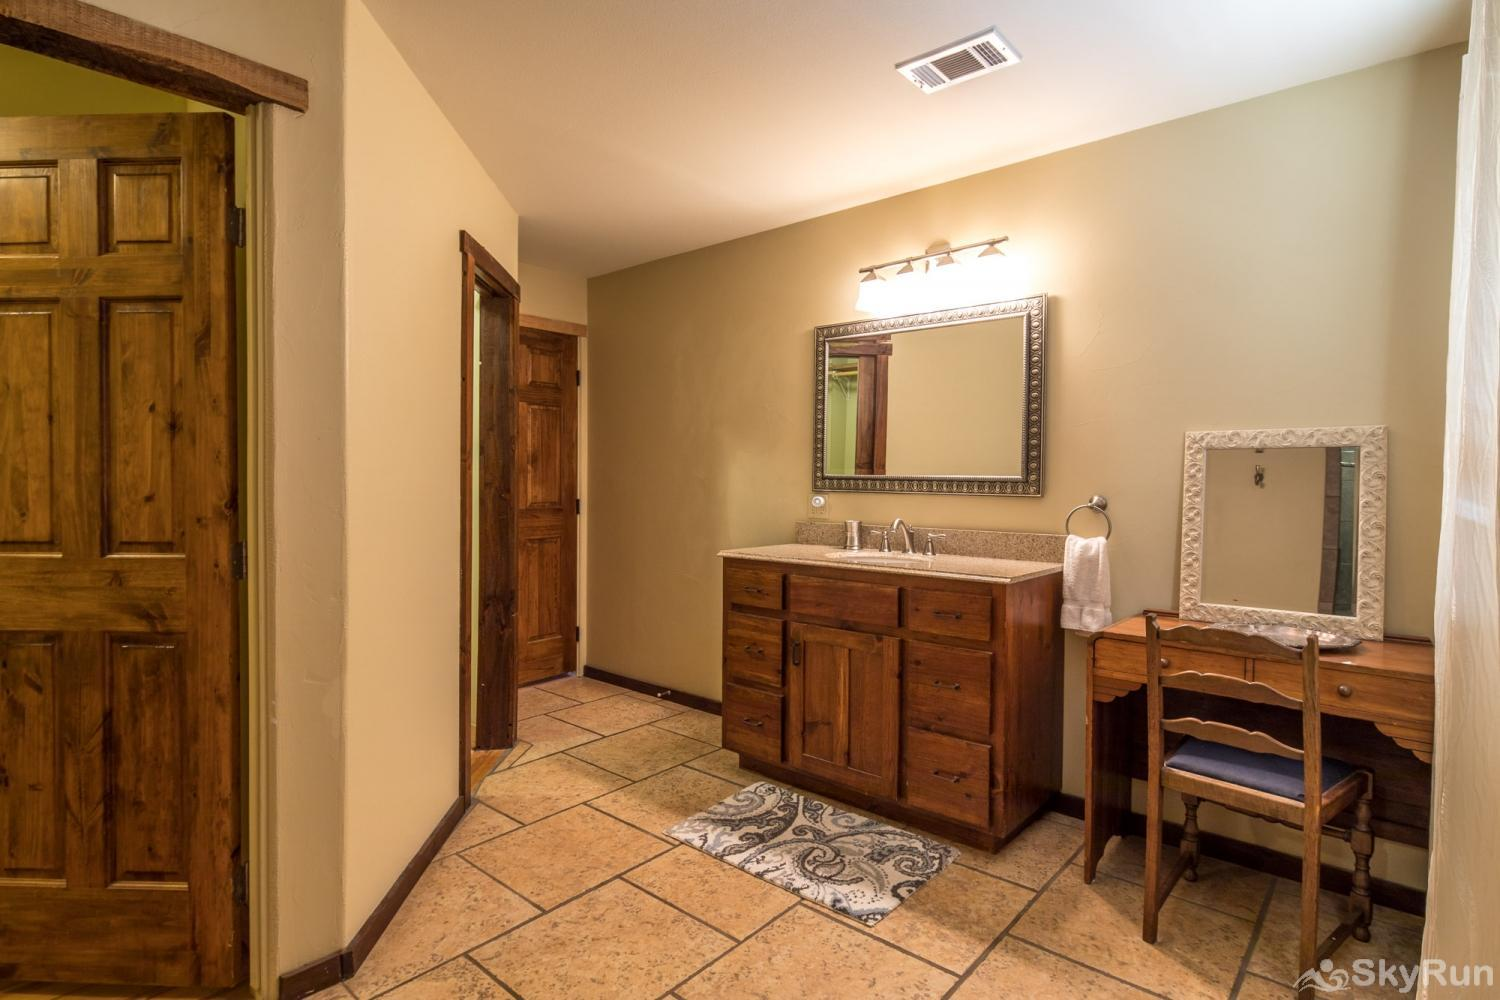 SHEPHERD'S LODGE Master bathroom, cont.